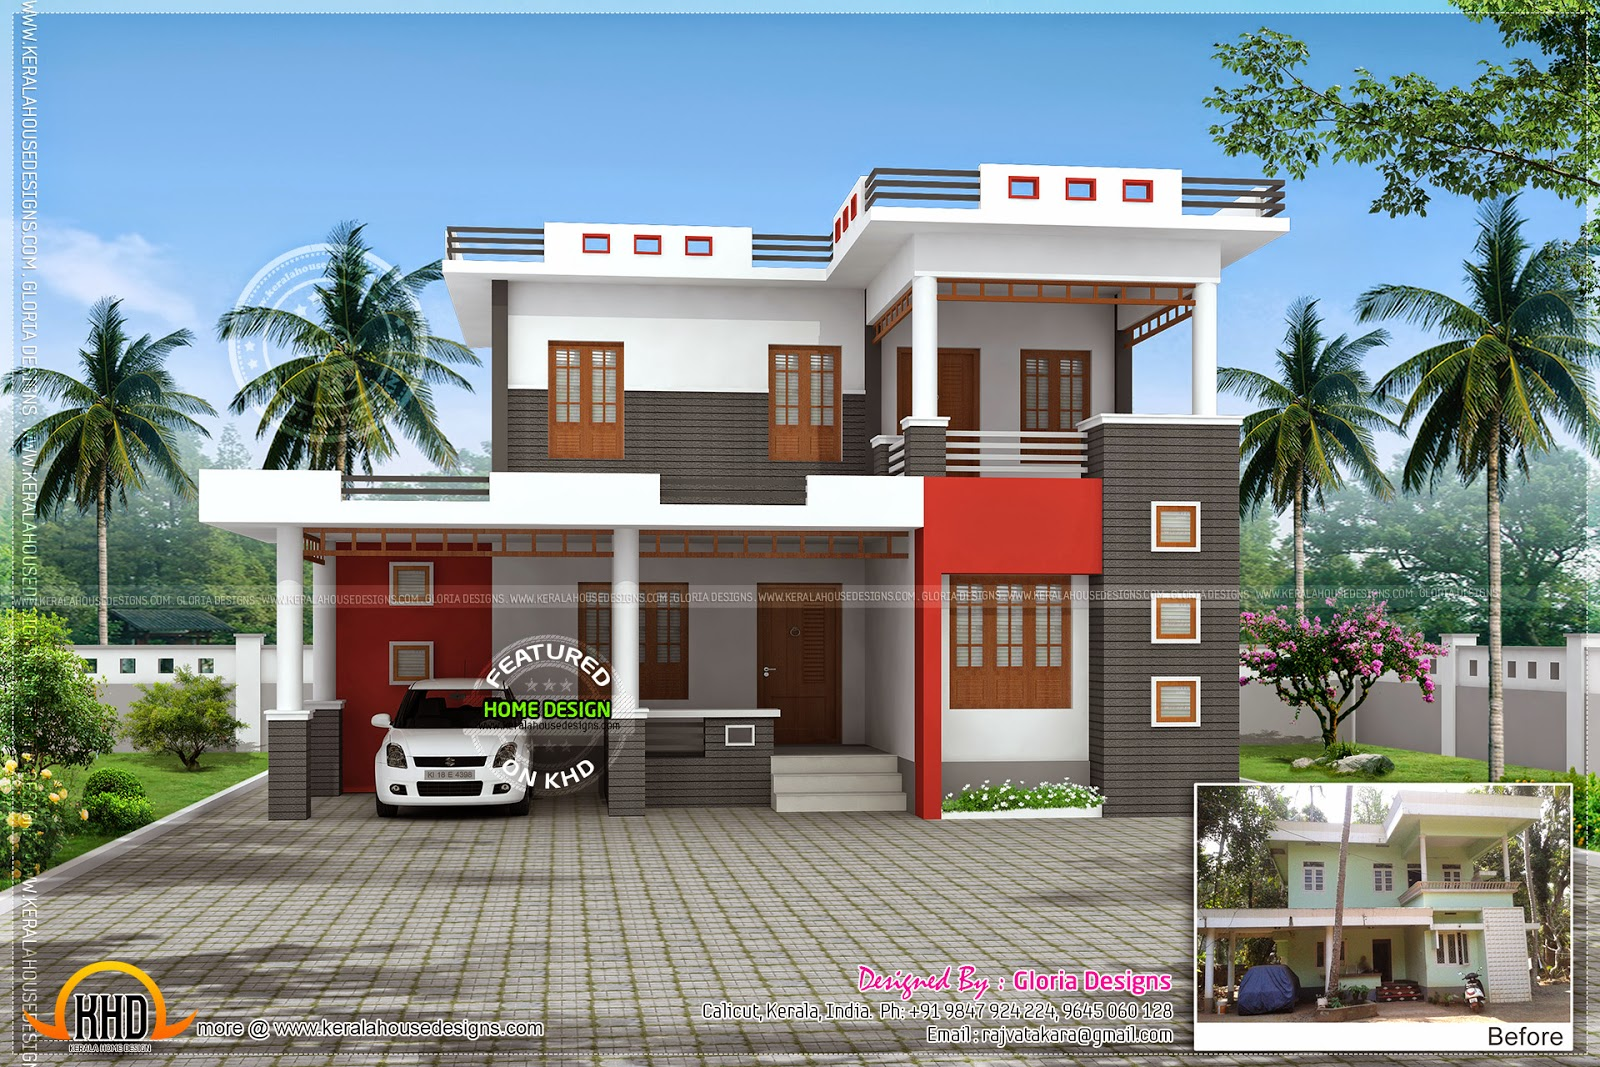 Renovation 3d model for an old house kerala home design for House models and plans